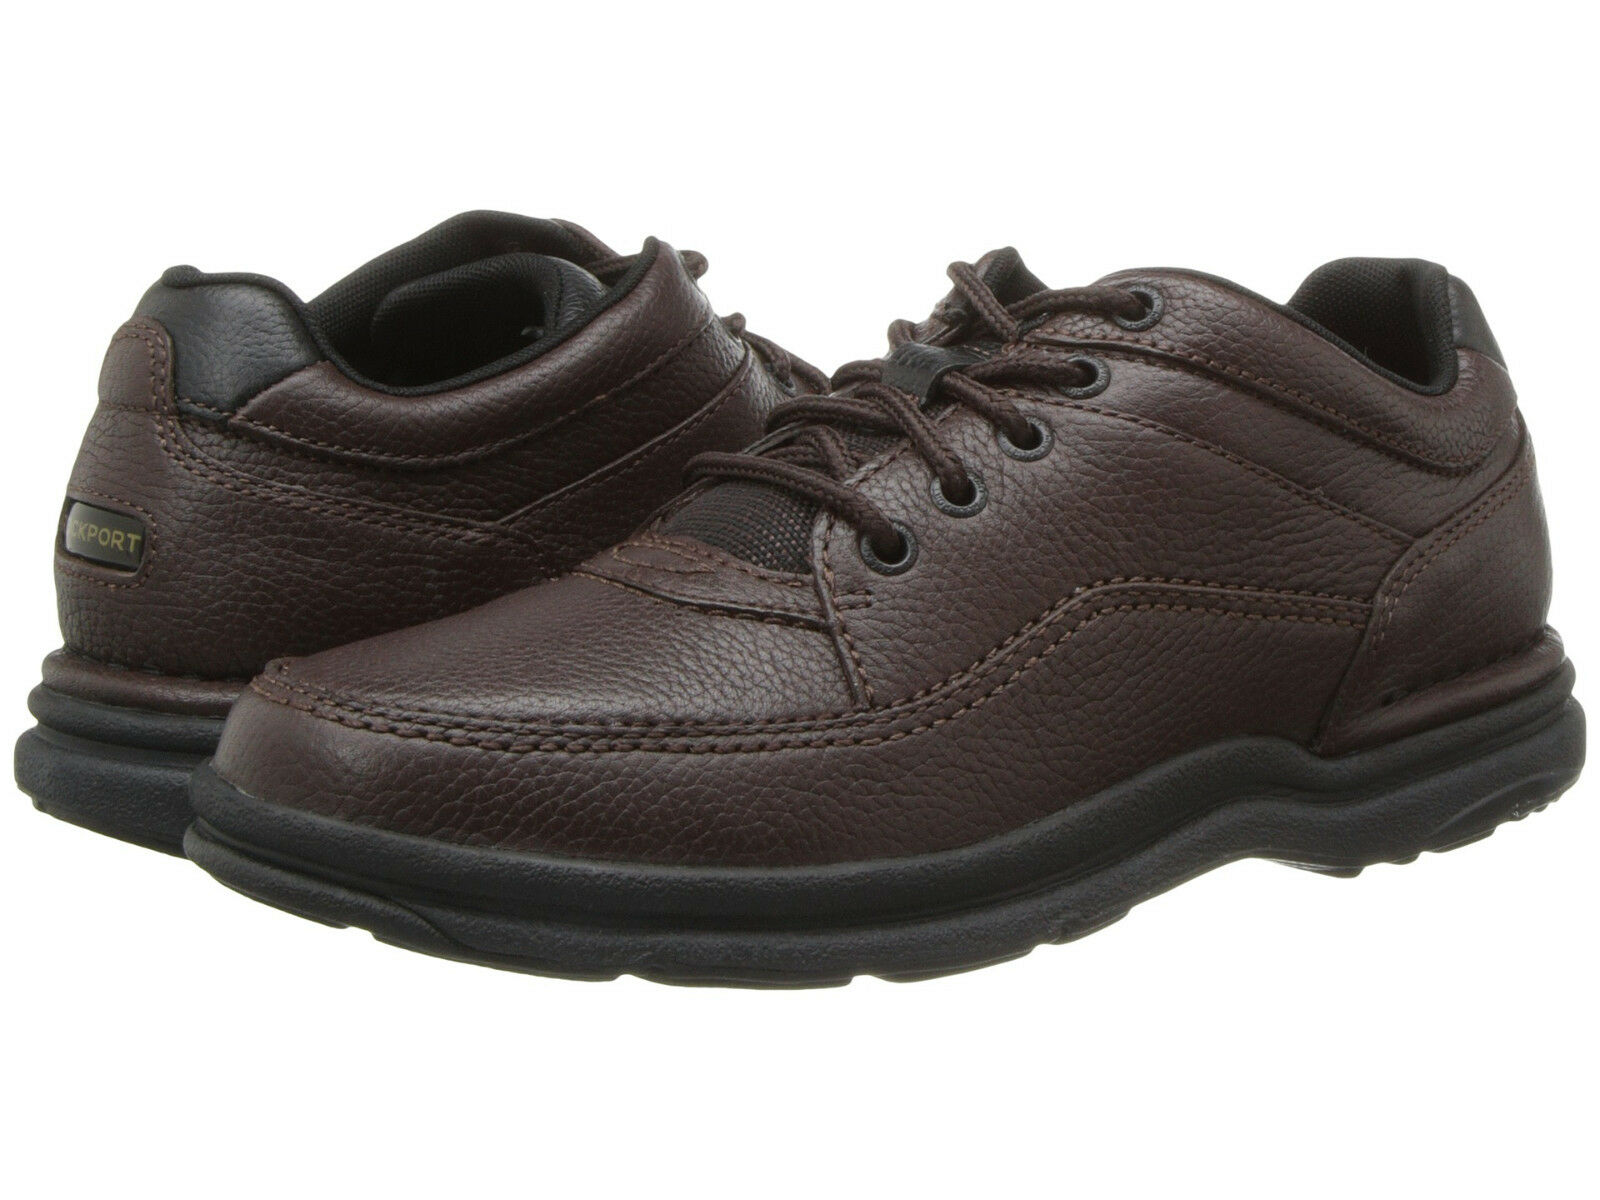 Rockport WT CLASSIC Mens braun K70884 Leather Lace Up Up Up Casual Dress Oxford schuhe 8c228a